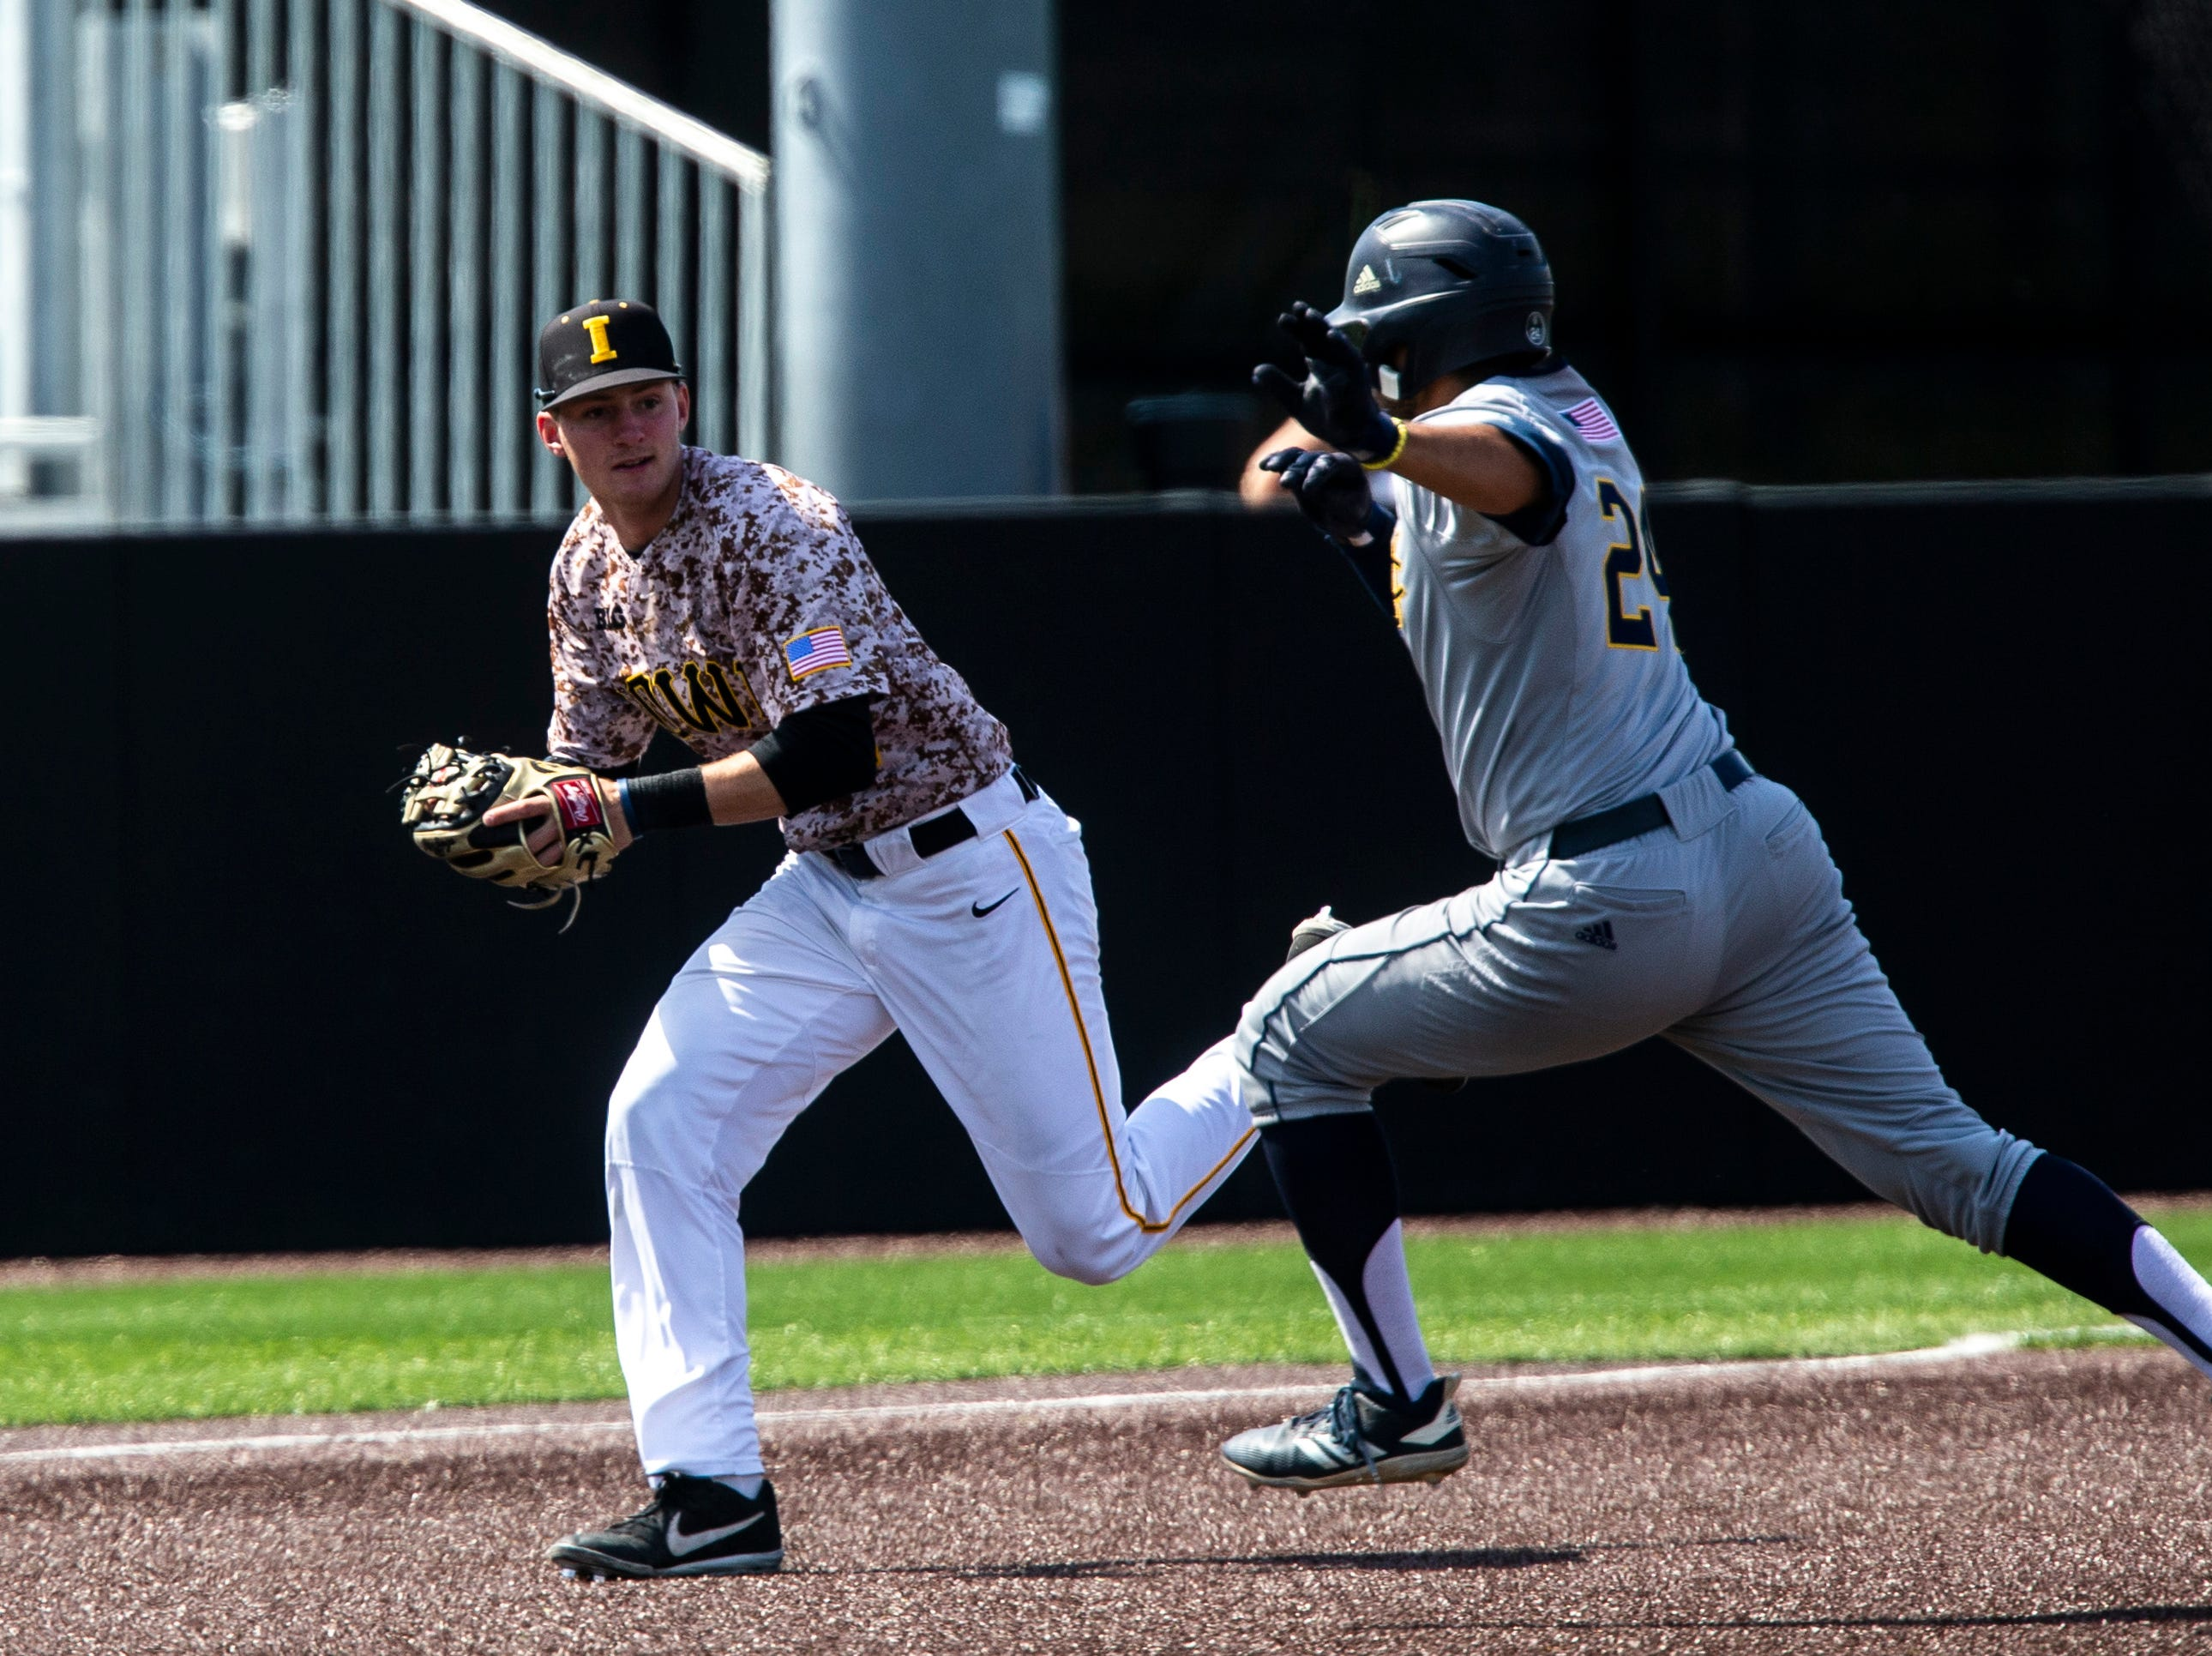 Iowa infielder Brendan Sher (2) tags University of California Irvine's Jacob Castro (24) ahead of third during a NCAA non conference baseball game, Sunday, May 5, 2019, at Duane Banks Field in Iowa City, Iowa.